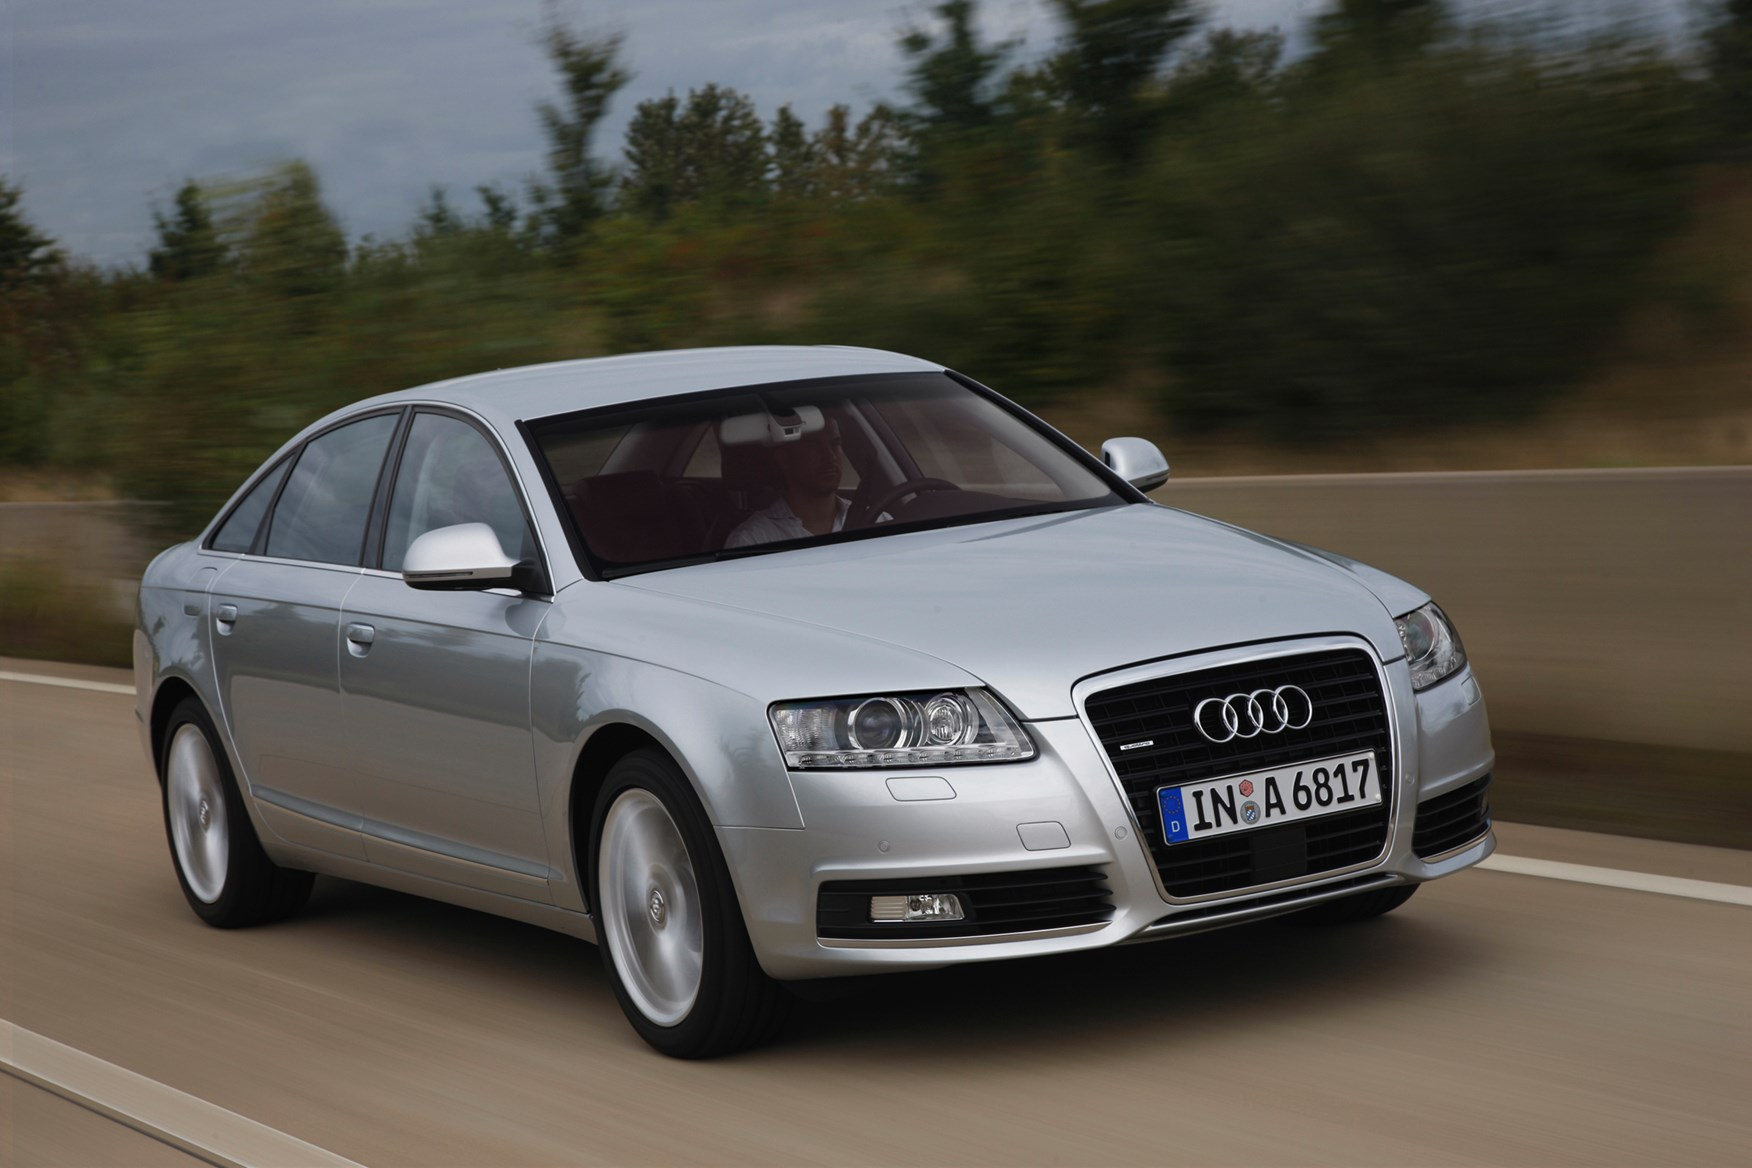 audi a6 saloon review 2004 2011 parkers. Black Bedroom Furniture Sets. Home Design Ideas